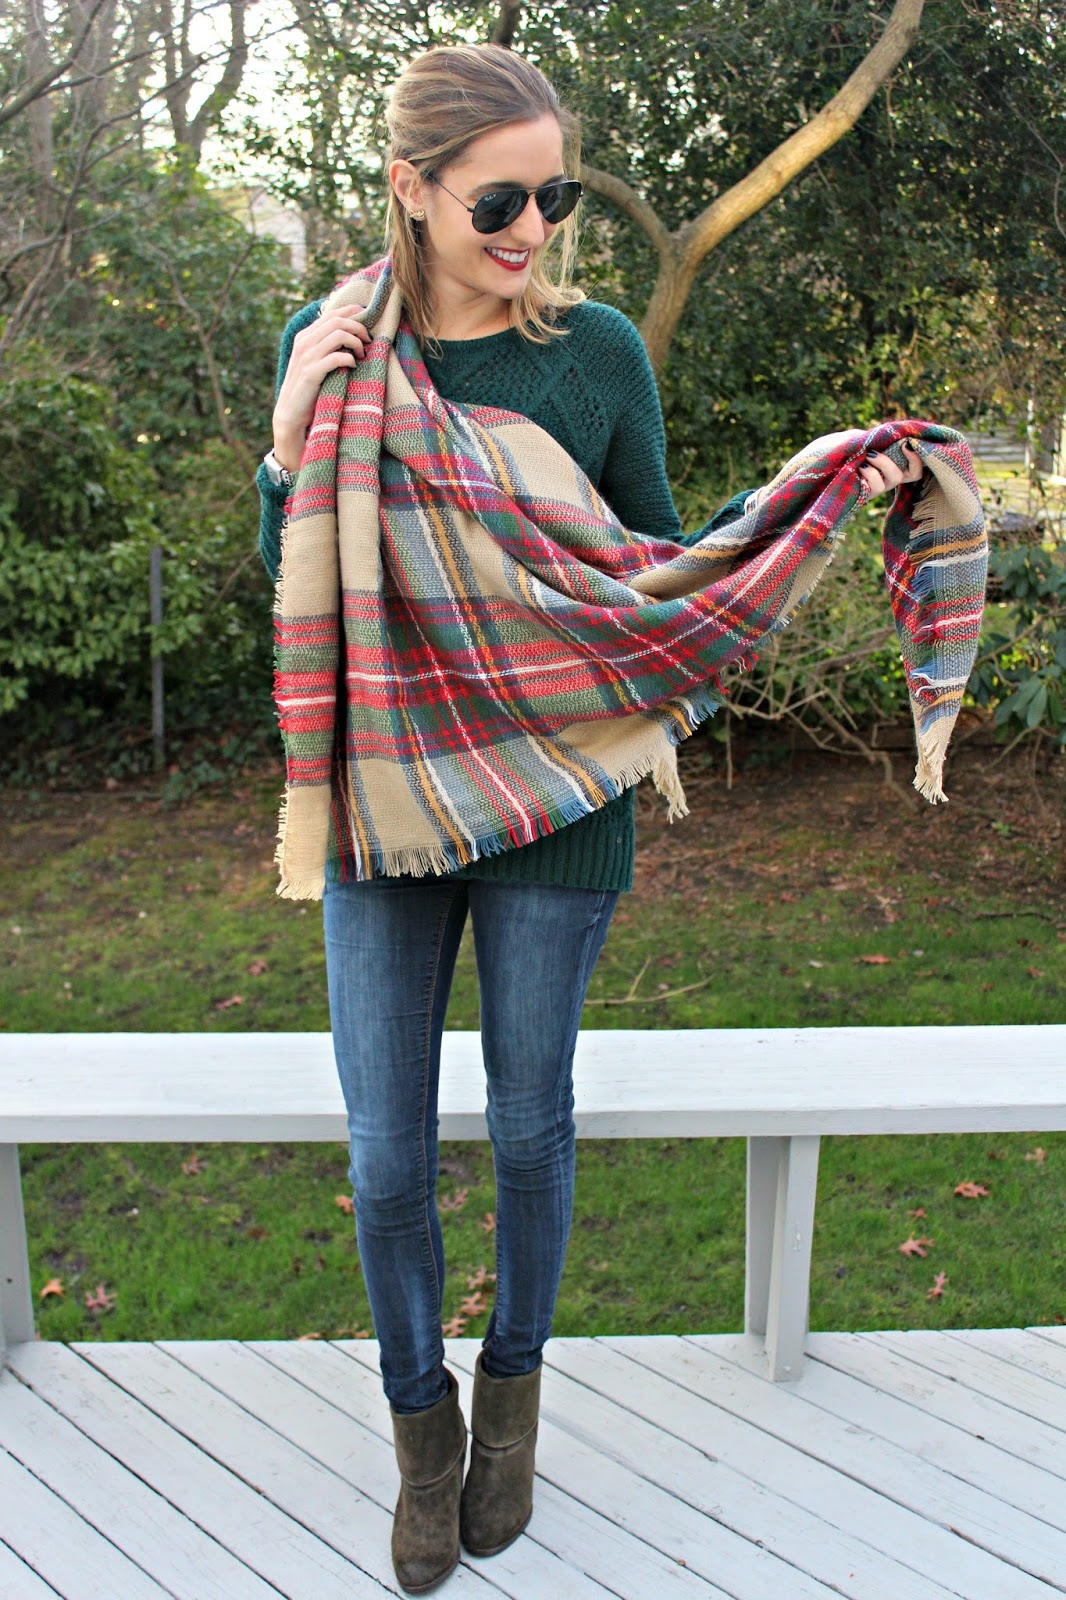 ways to style a blanket scarf